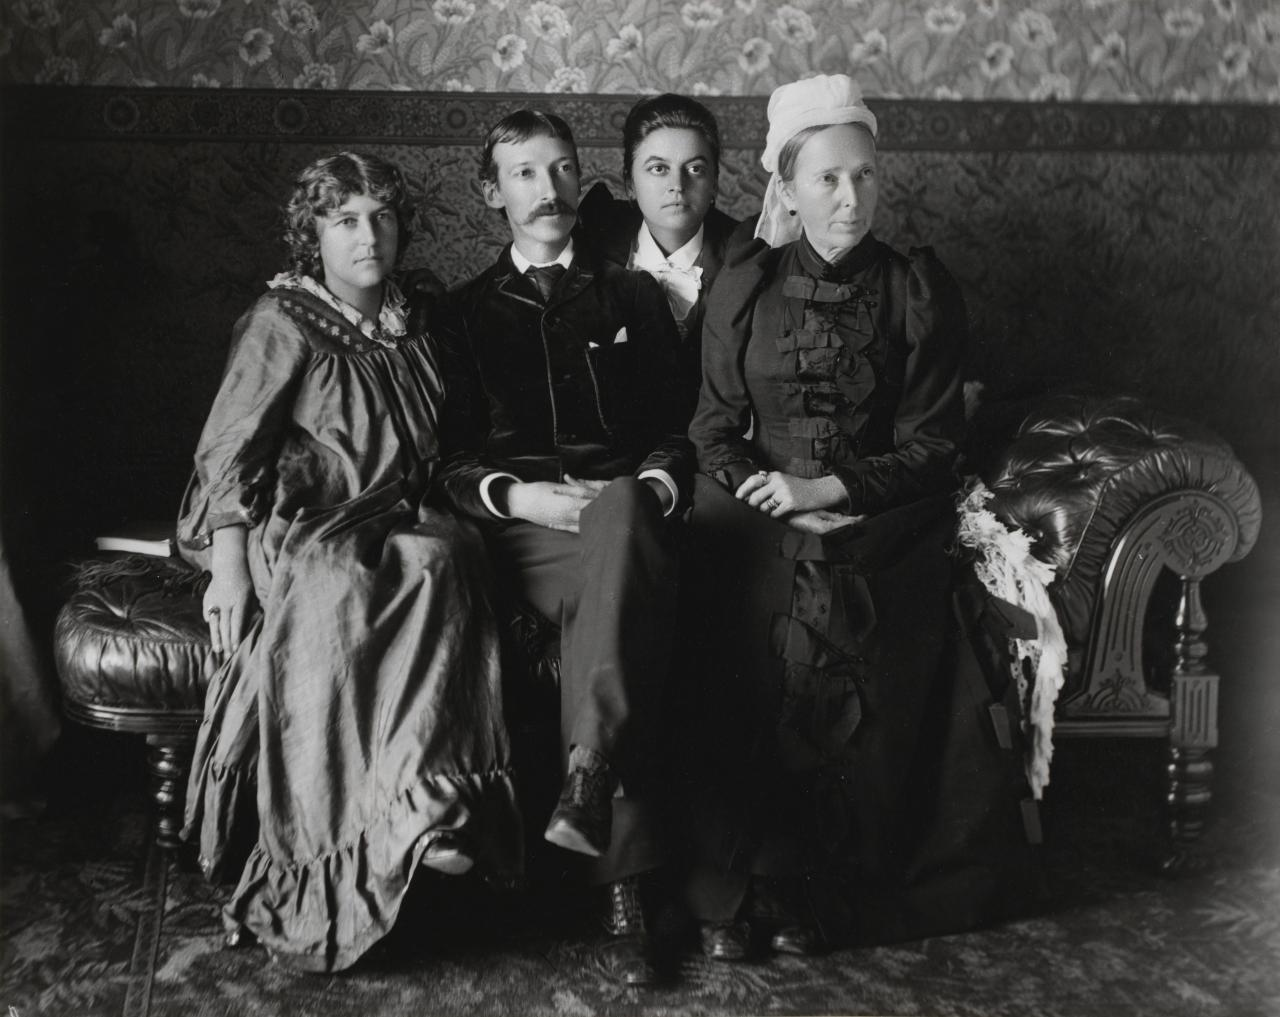 Robert Louis Stephenson, his wife, mother and step-sister, Sydney